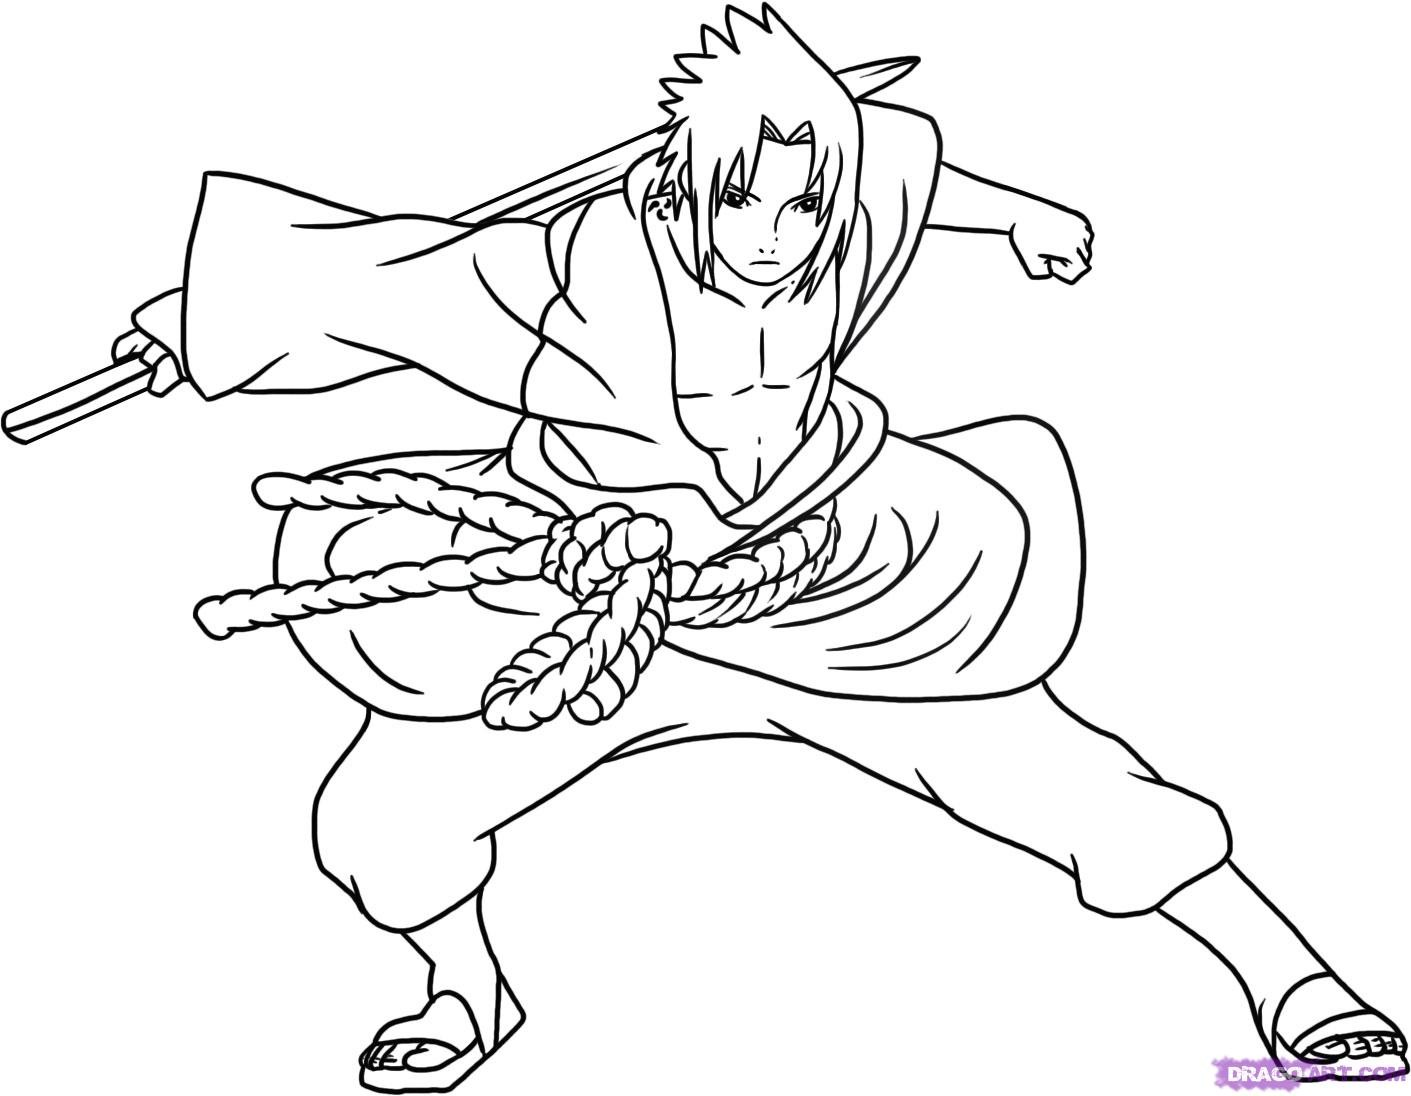 revenge story of villager naruto 20 naruto coloring pages free